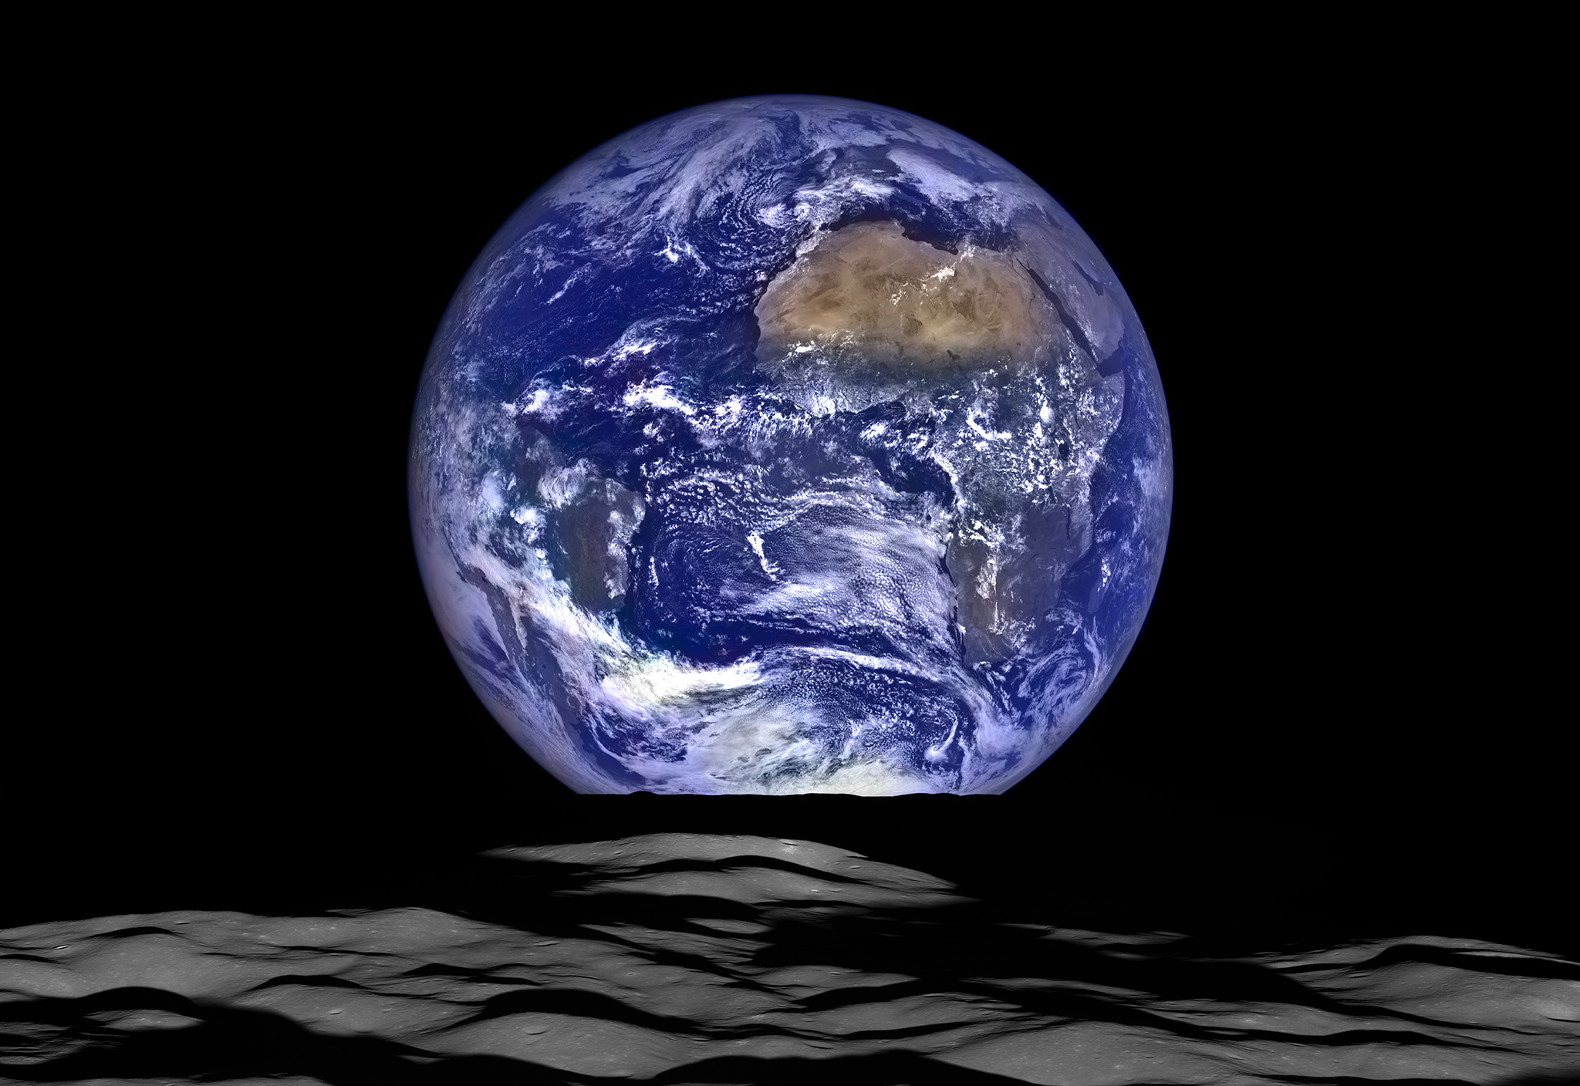 The earth's rotation is slowing - and days will eventually be 25 hours long